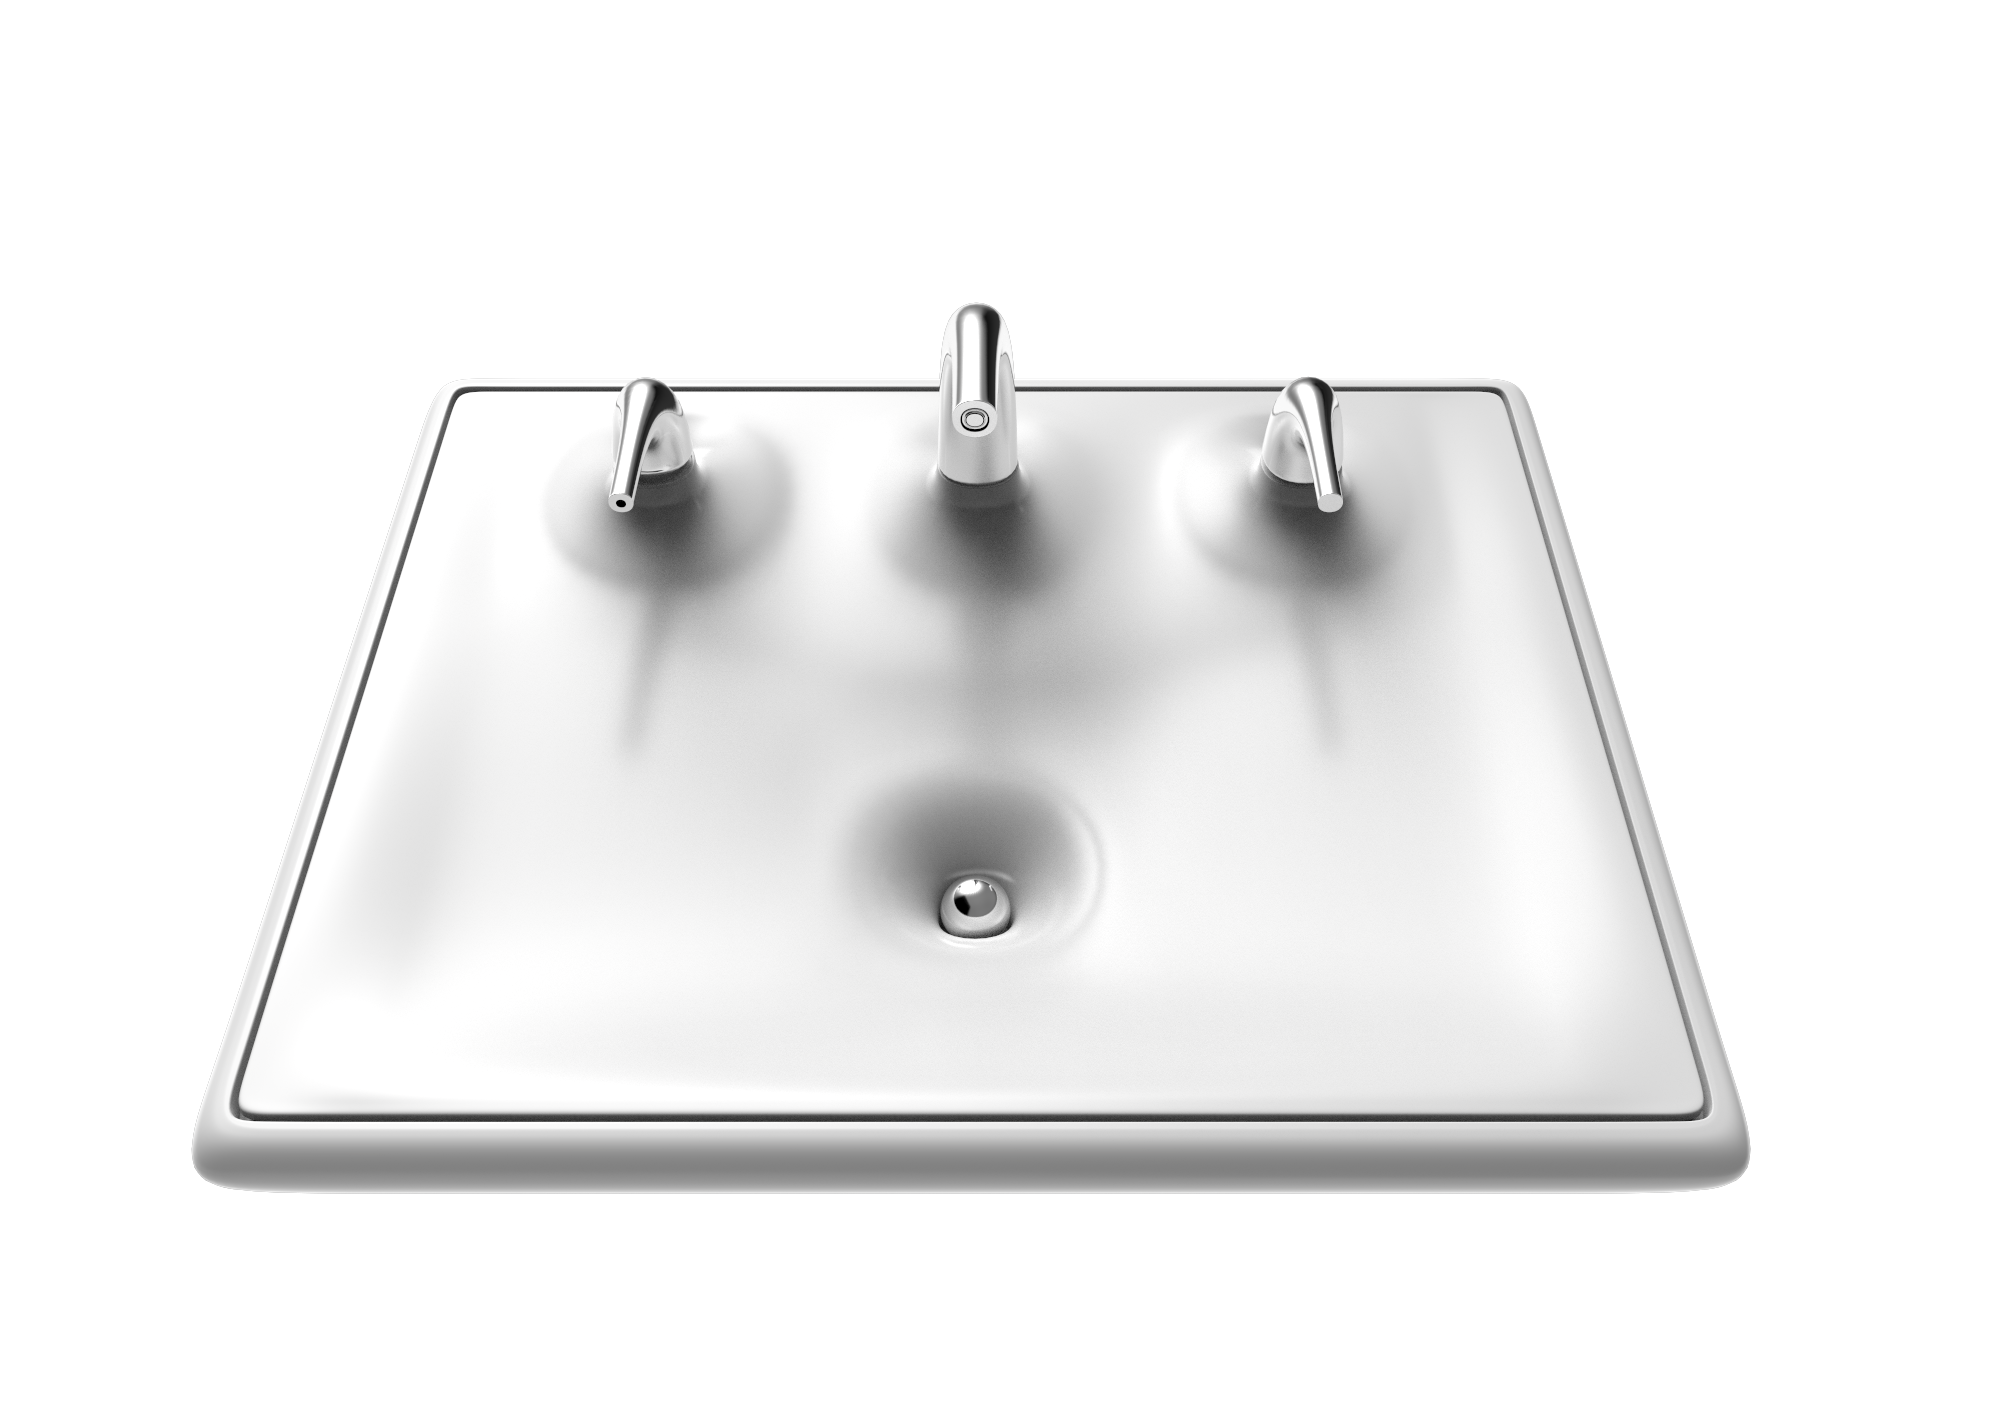 sink design gravity well drain modern bathroom water